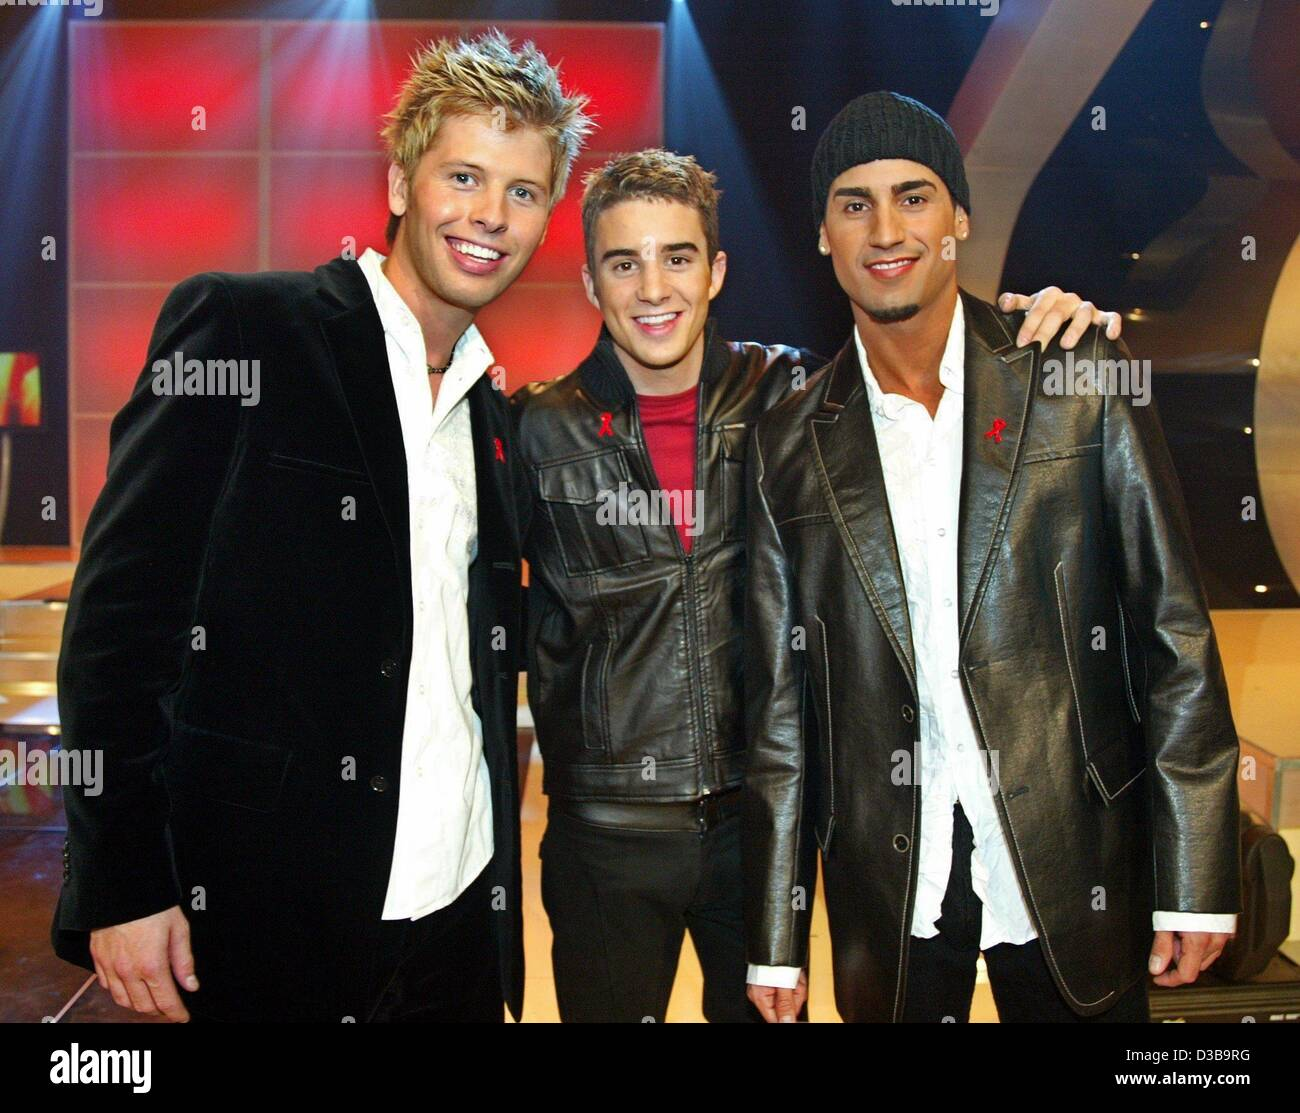 (dpa) - The members of the boygroup B3 pose during a dress rehearsal of the Aids gala 'Stars 2002' in Berlin, - Stock Image